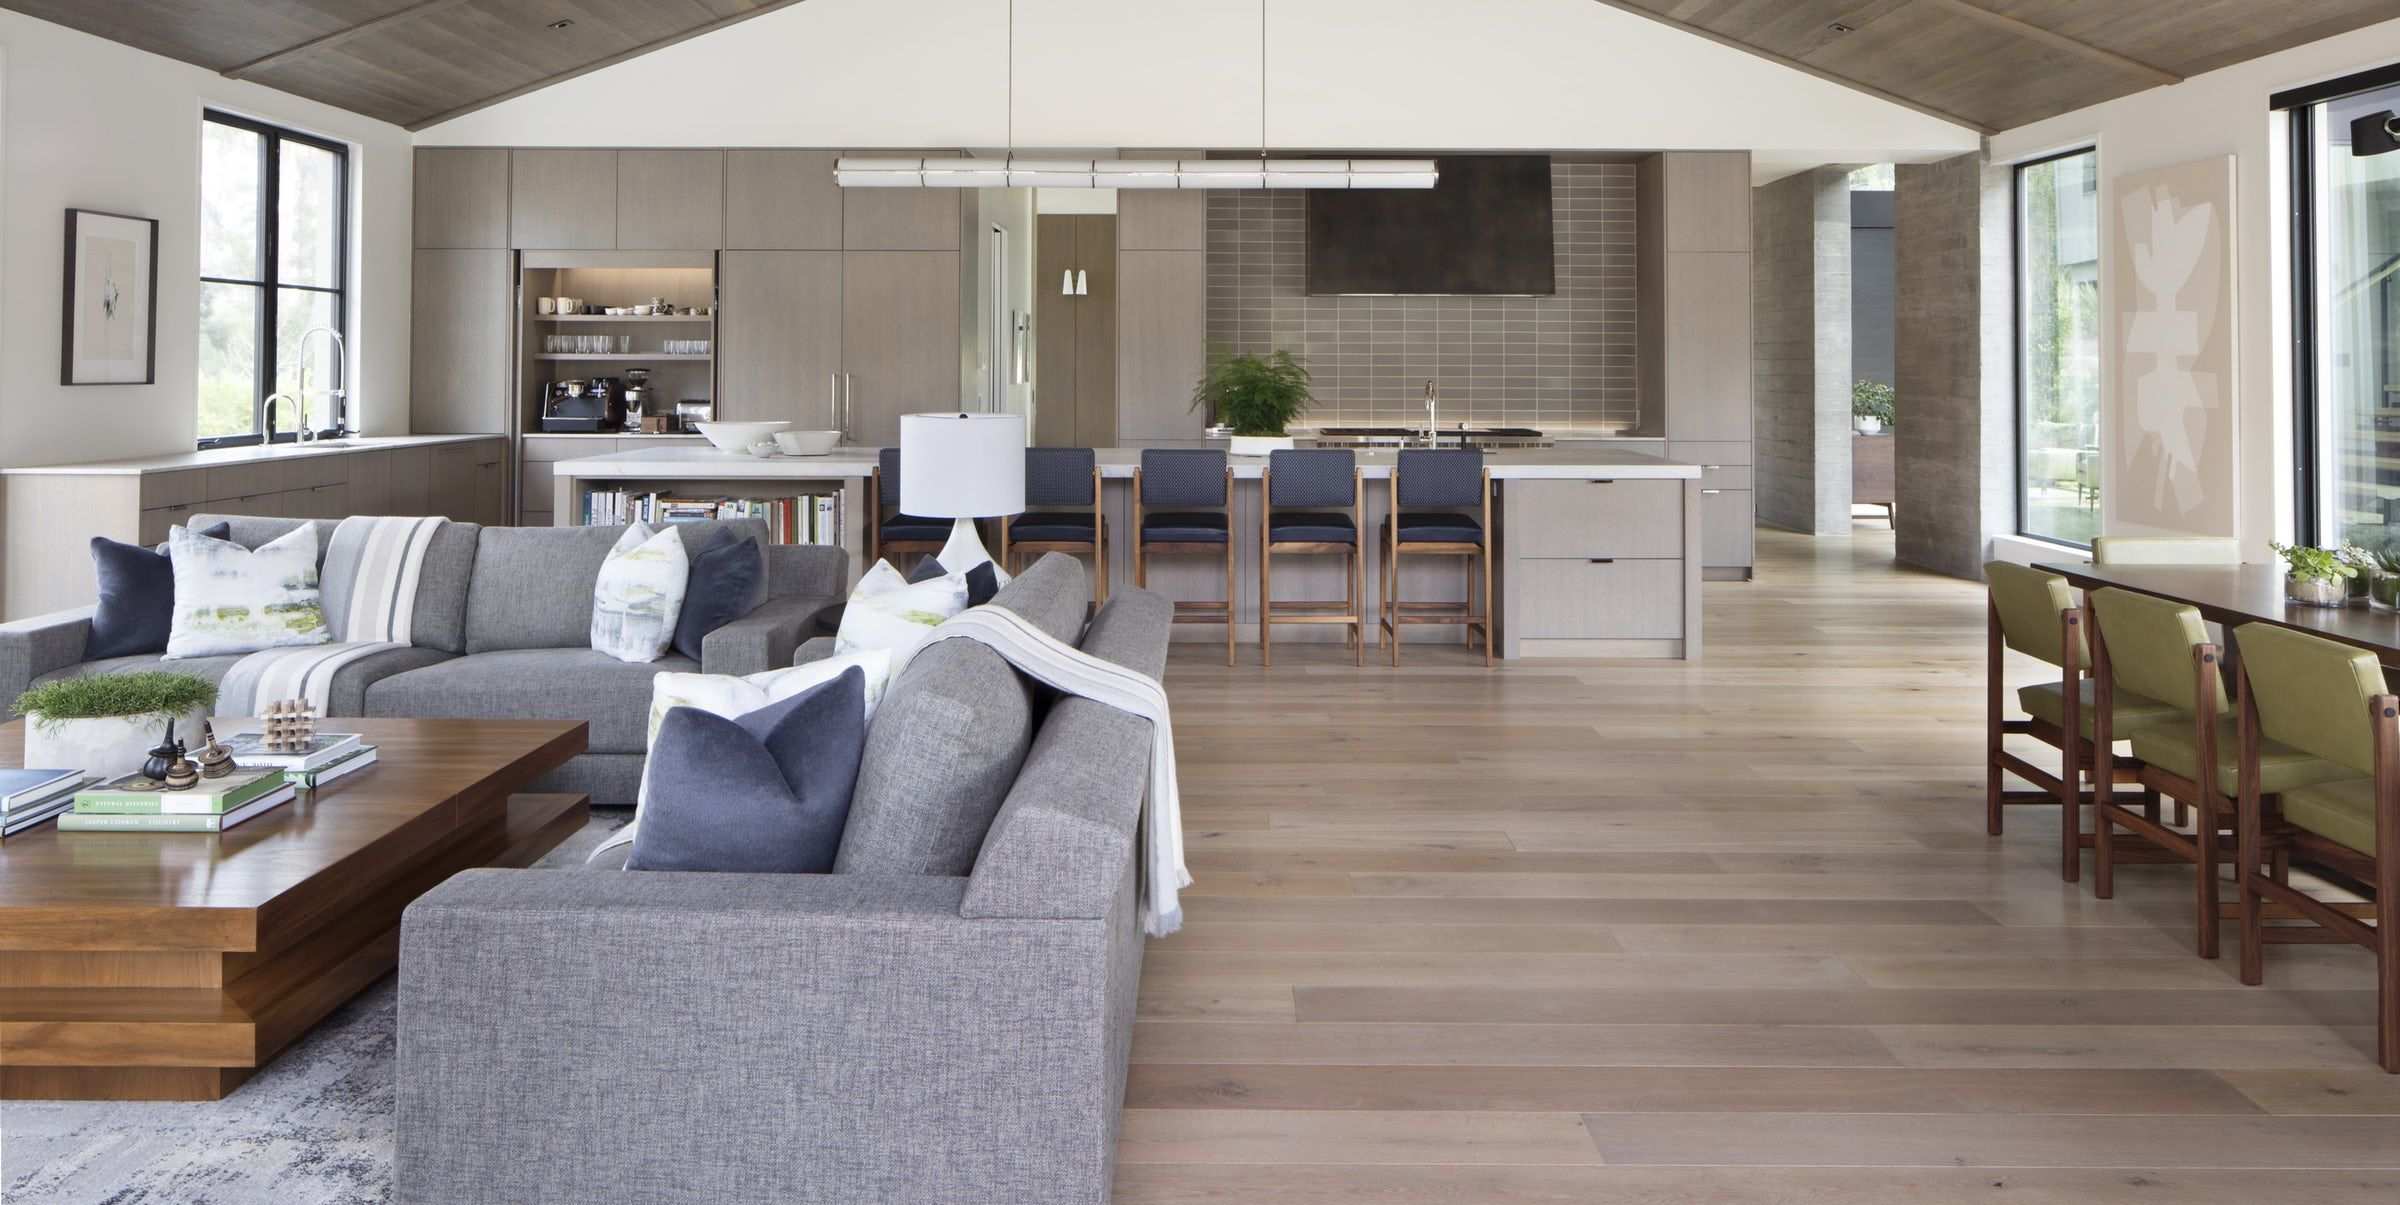 30+ Ideas for a Chic Open-Concept Space